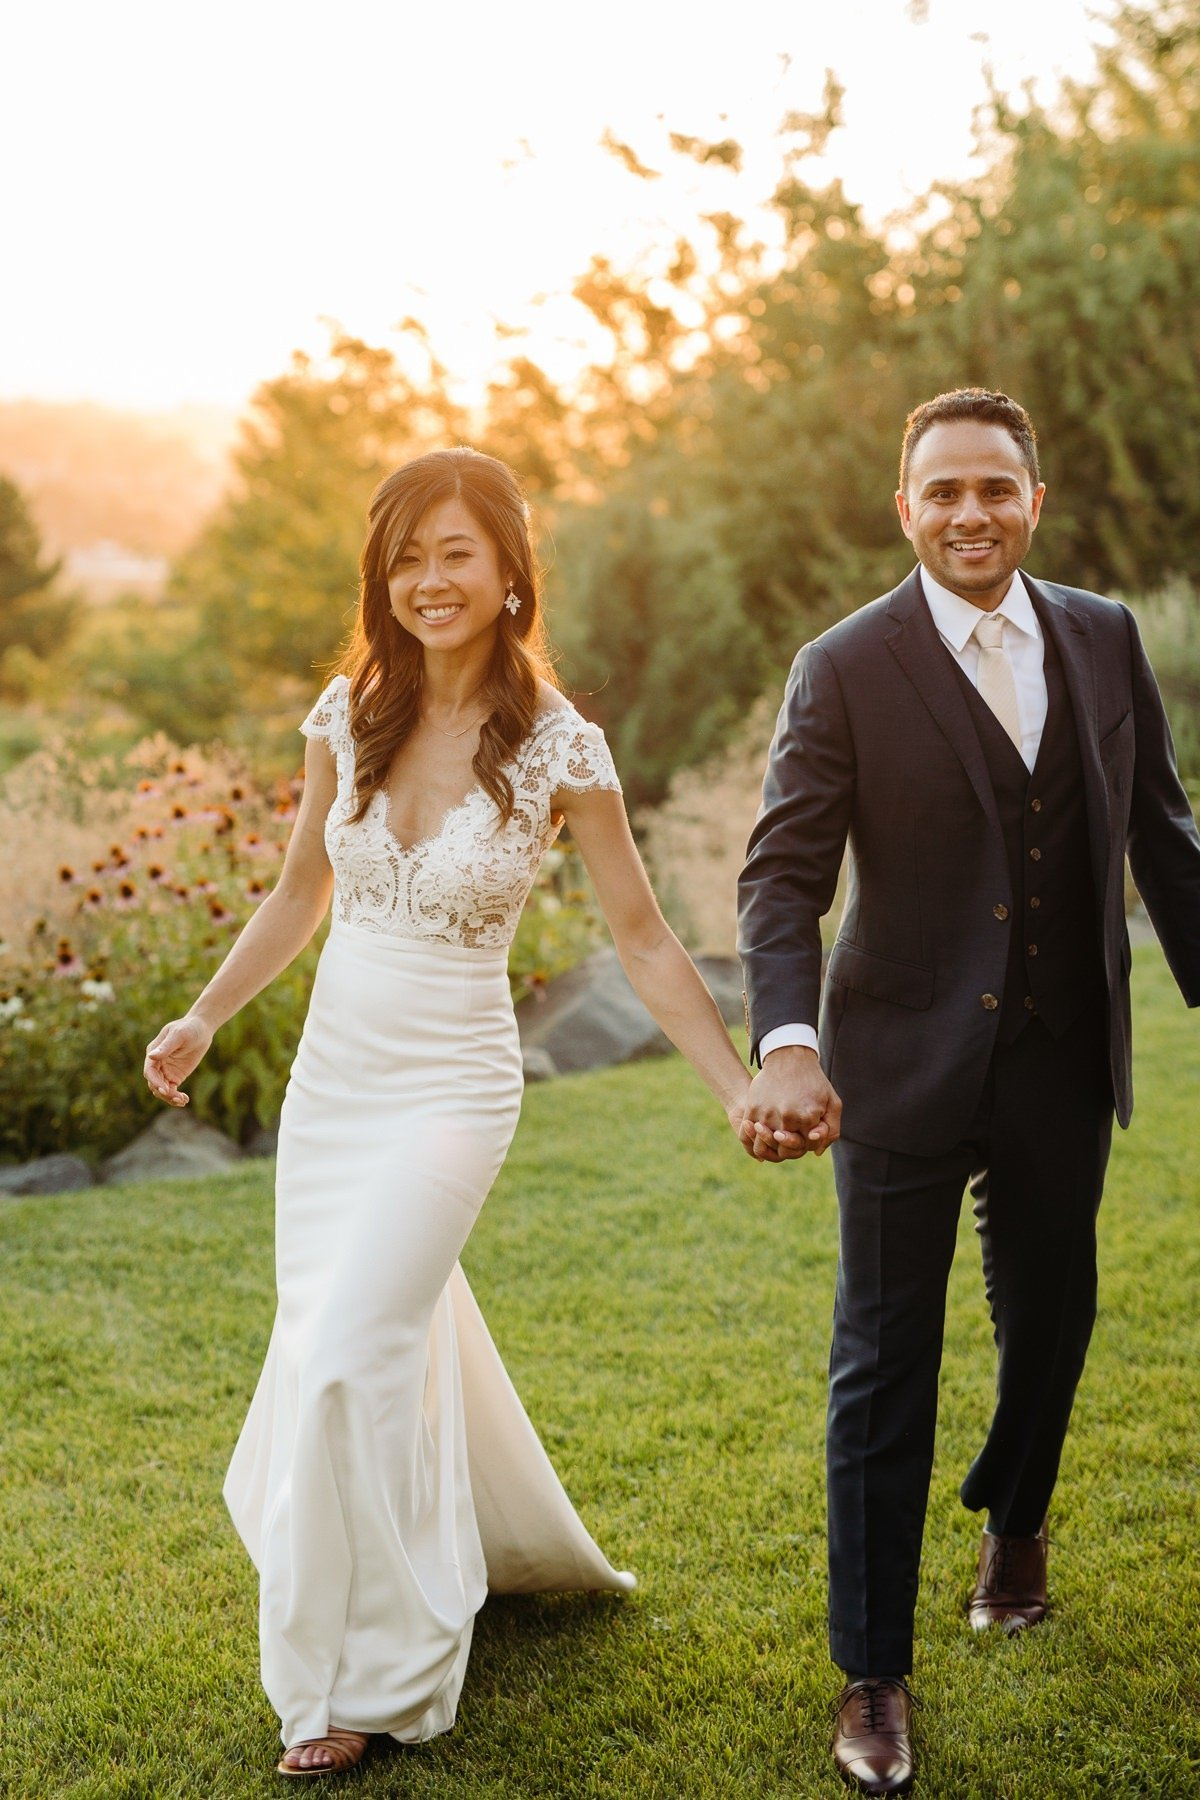 terra-blanca-winery-wedding-washington-seattle-cameron-zegers-0008